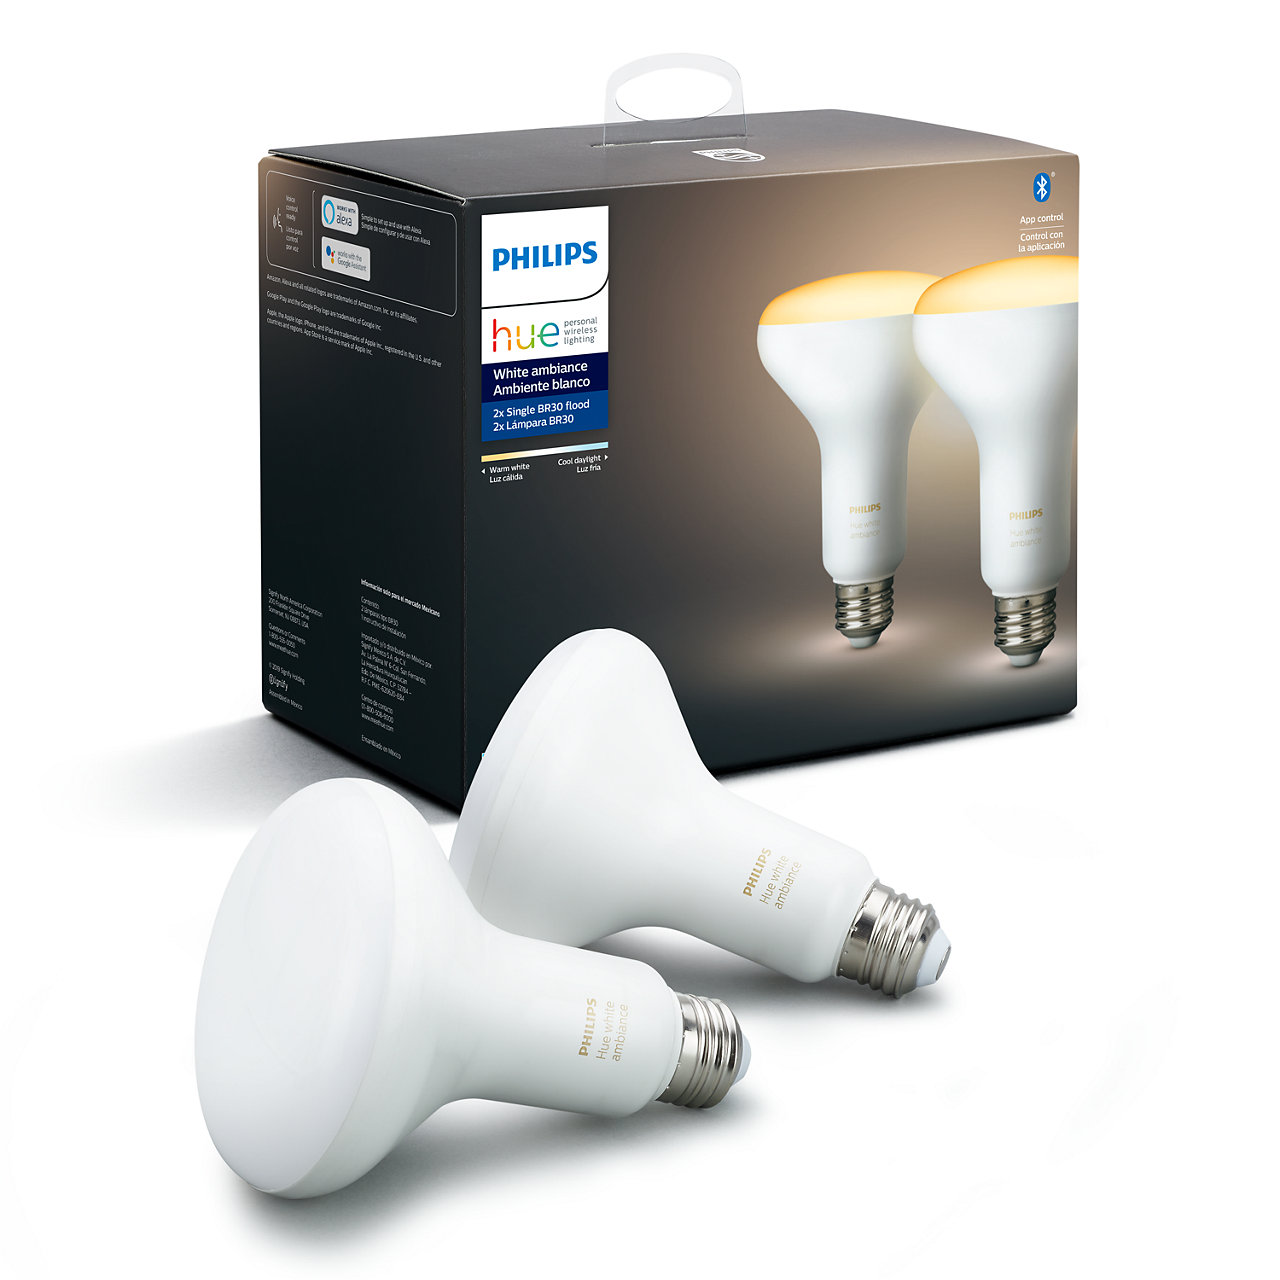 Hue White Ambiance Dimmable BR30 Wi-Fi Smart LED Floodlight Bulb (2-Pack)